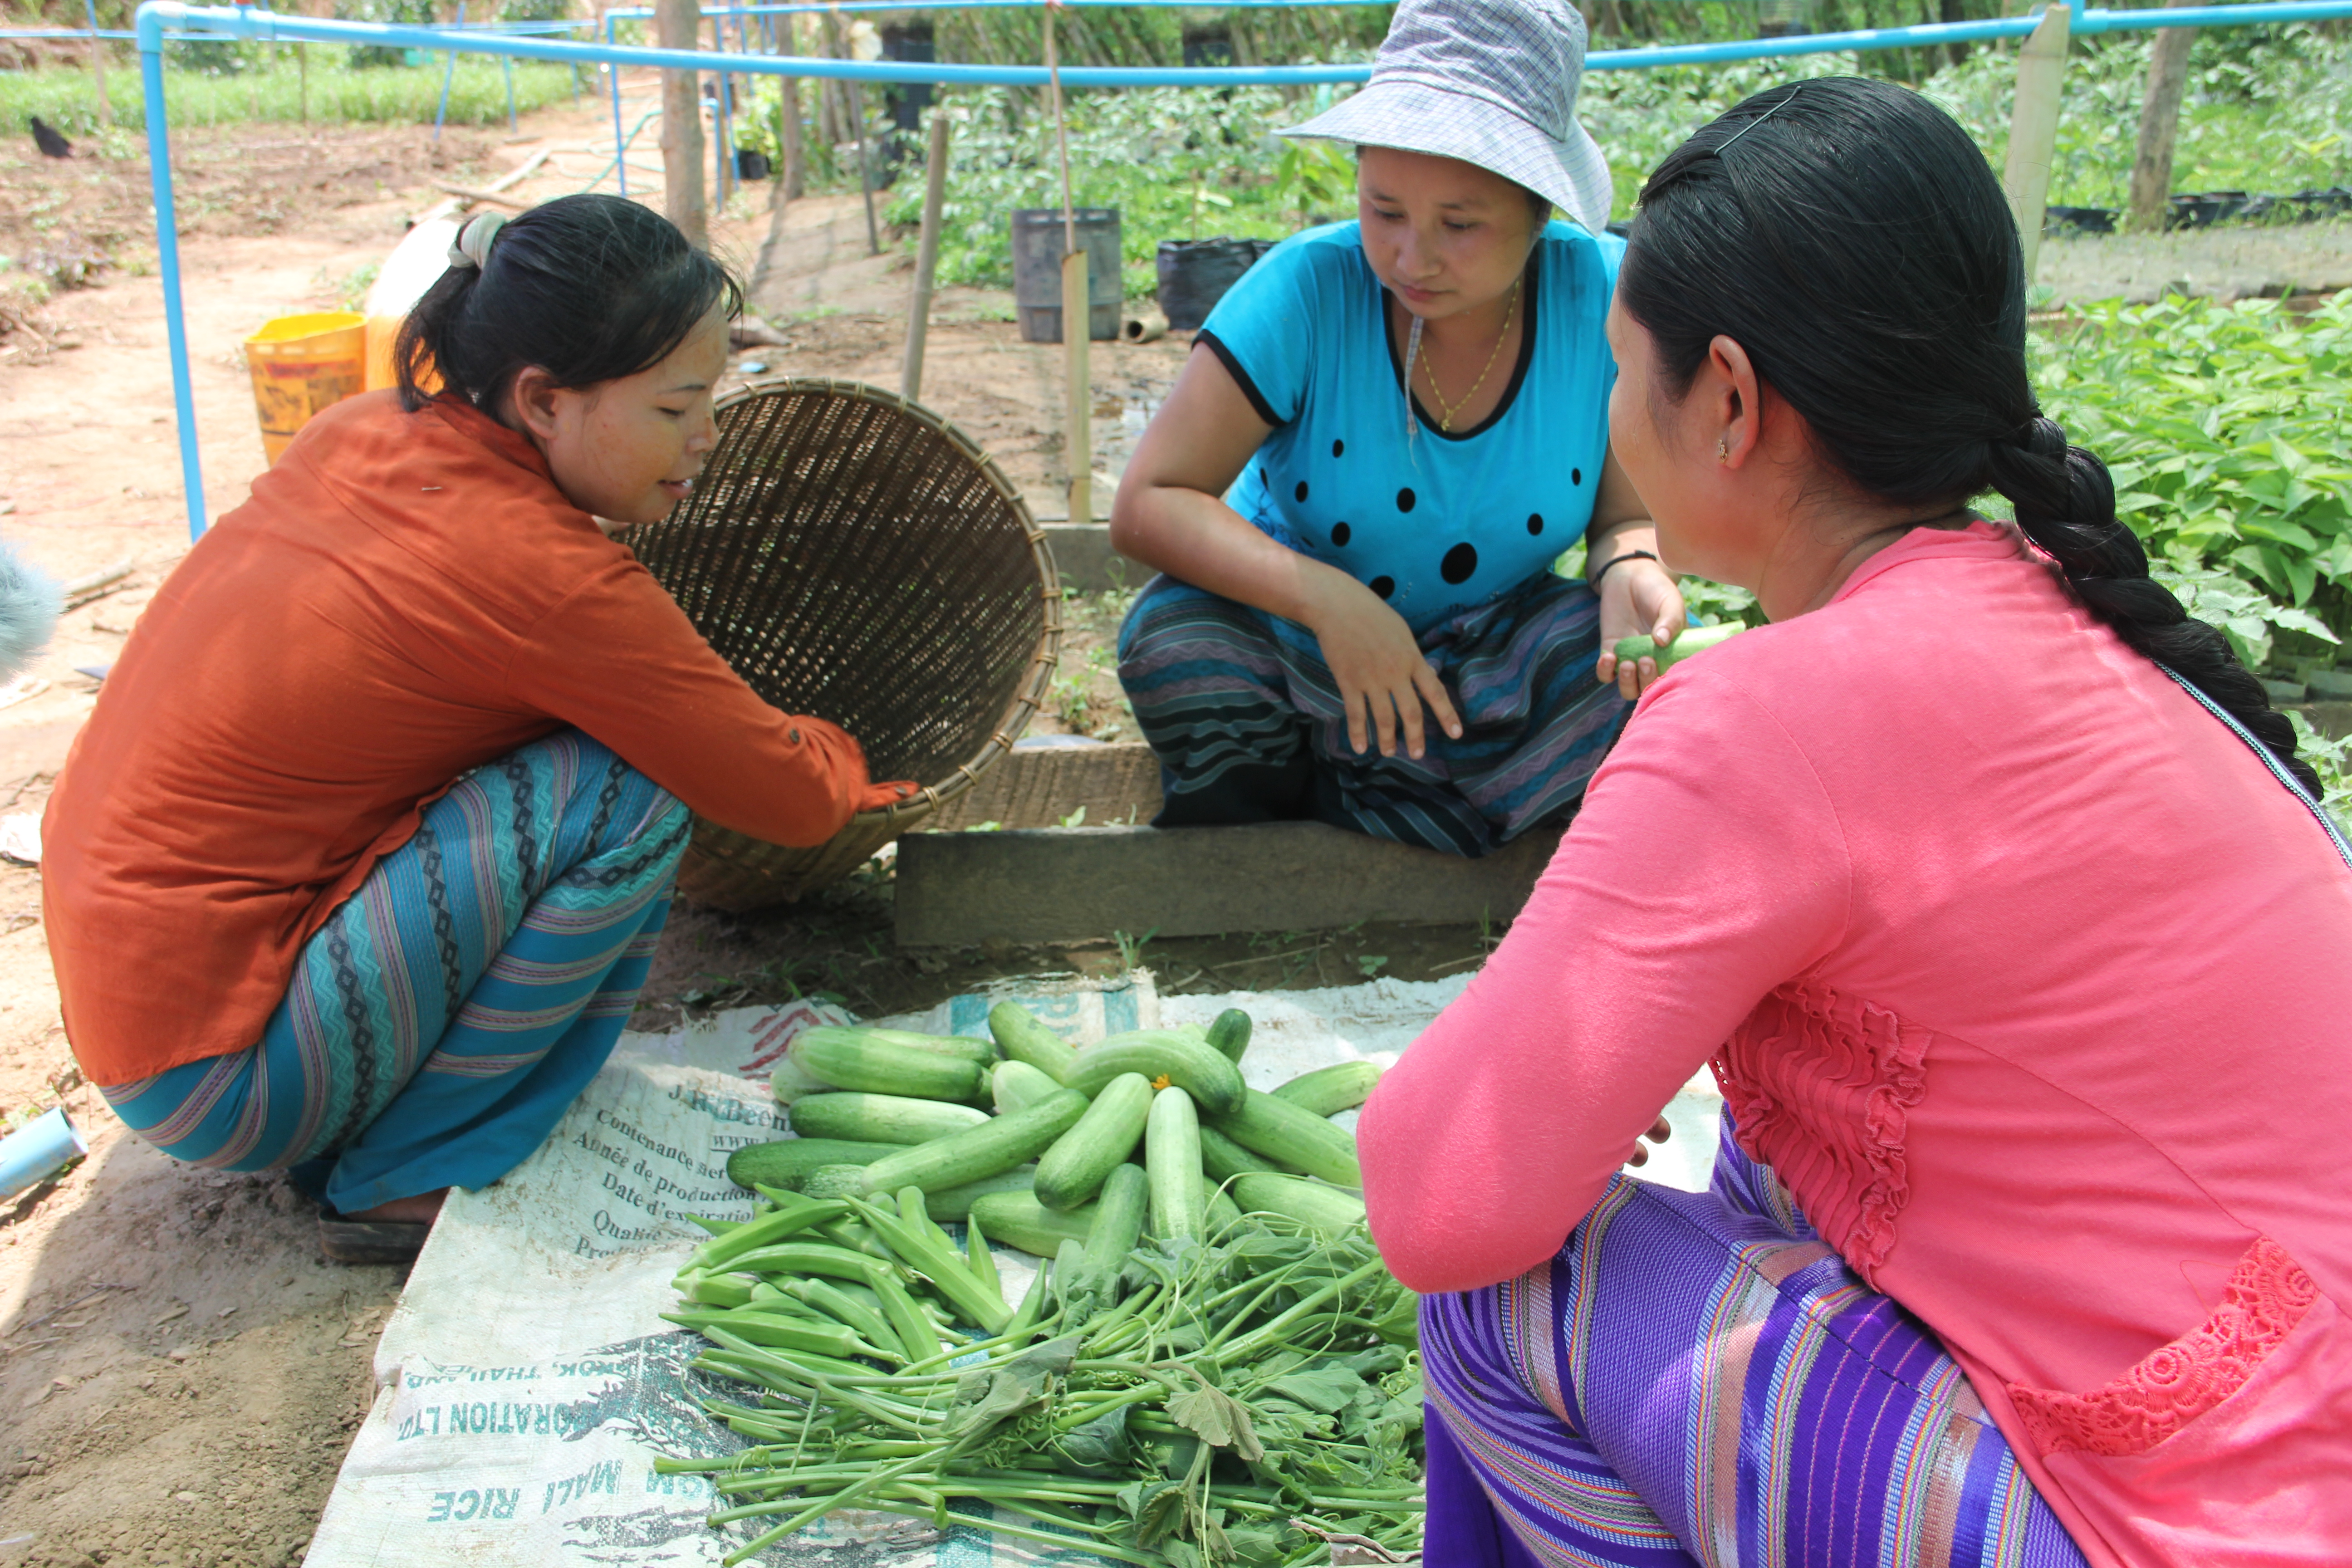 Women cultivating fruit and vegetables as part of the LIFE project in Myanmar.